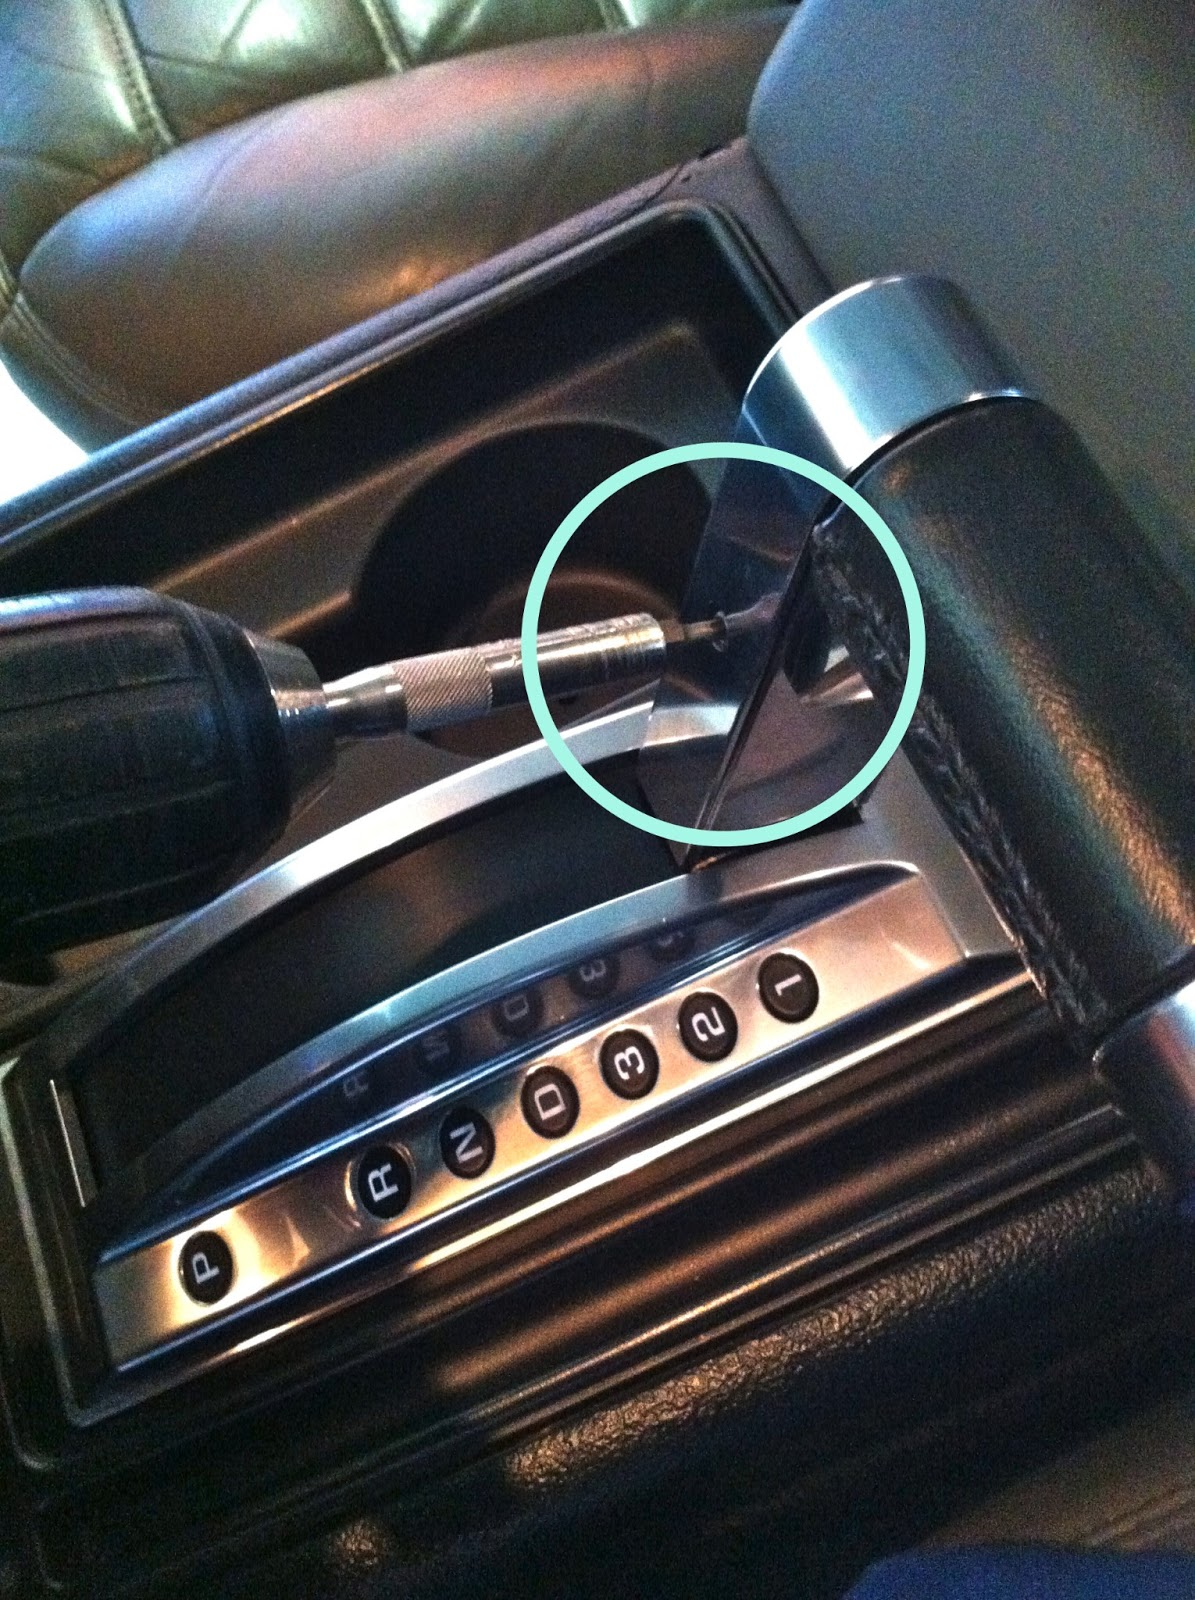 car audio tips tricks and how to s hummer h2 stereo removal you will first need to put the vehicle into 1st gear and remove the t15 torx from the shifter allowing you to lift up and remove the shifter out of the